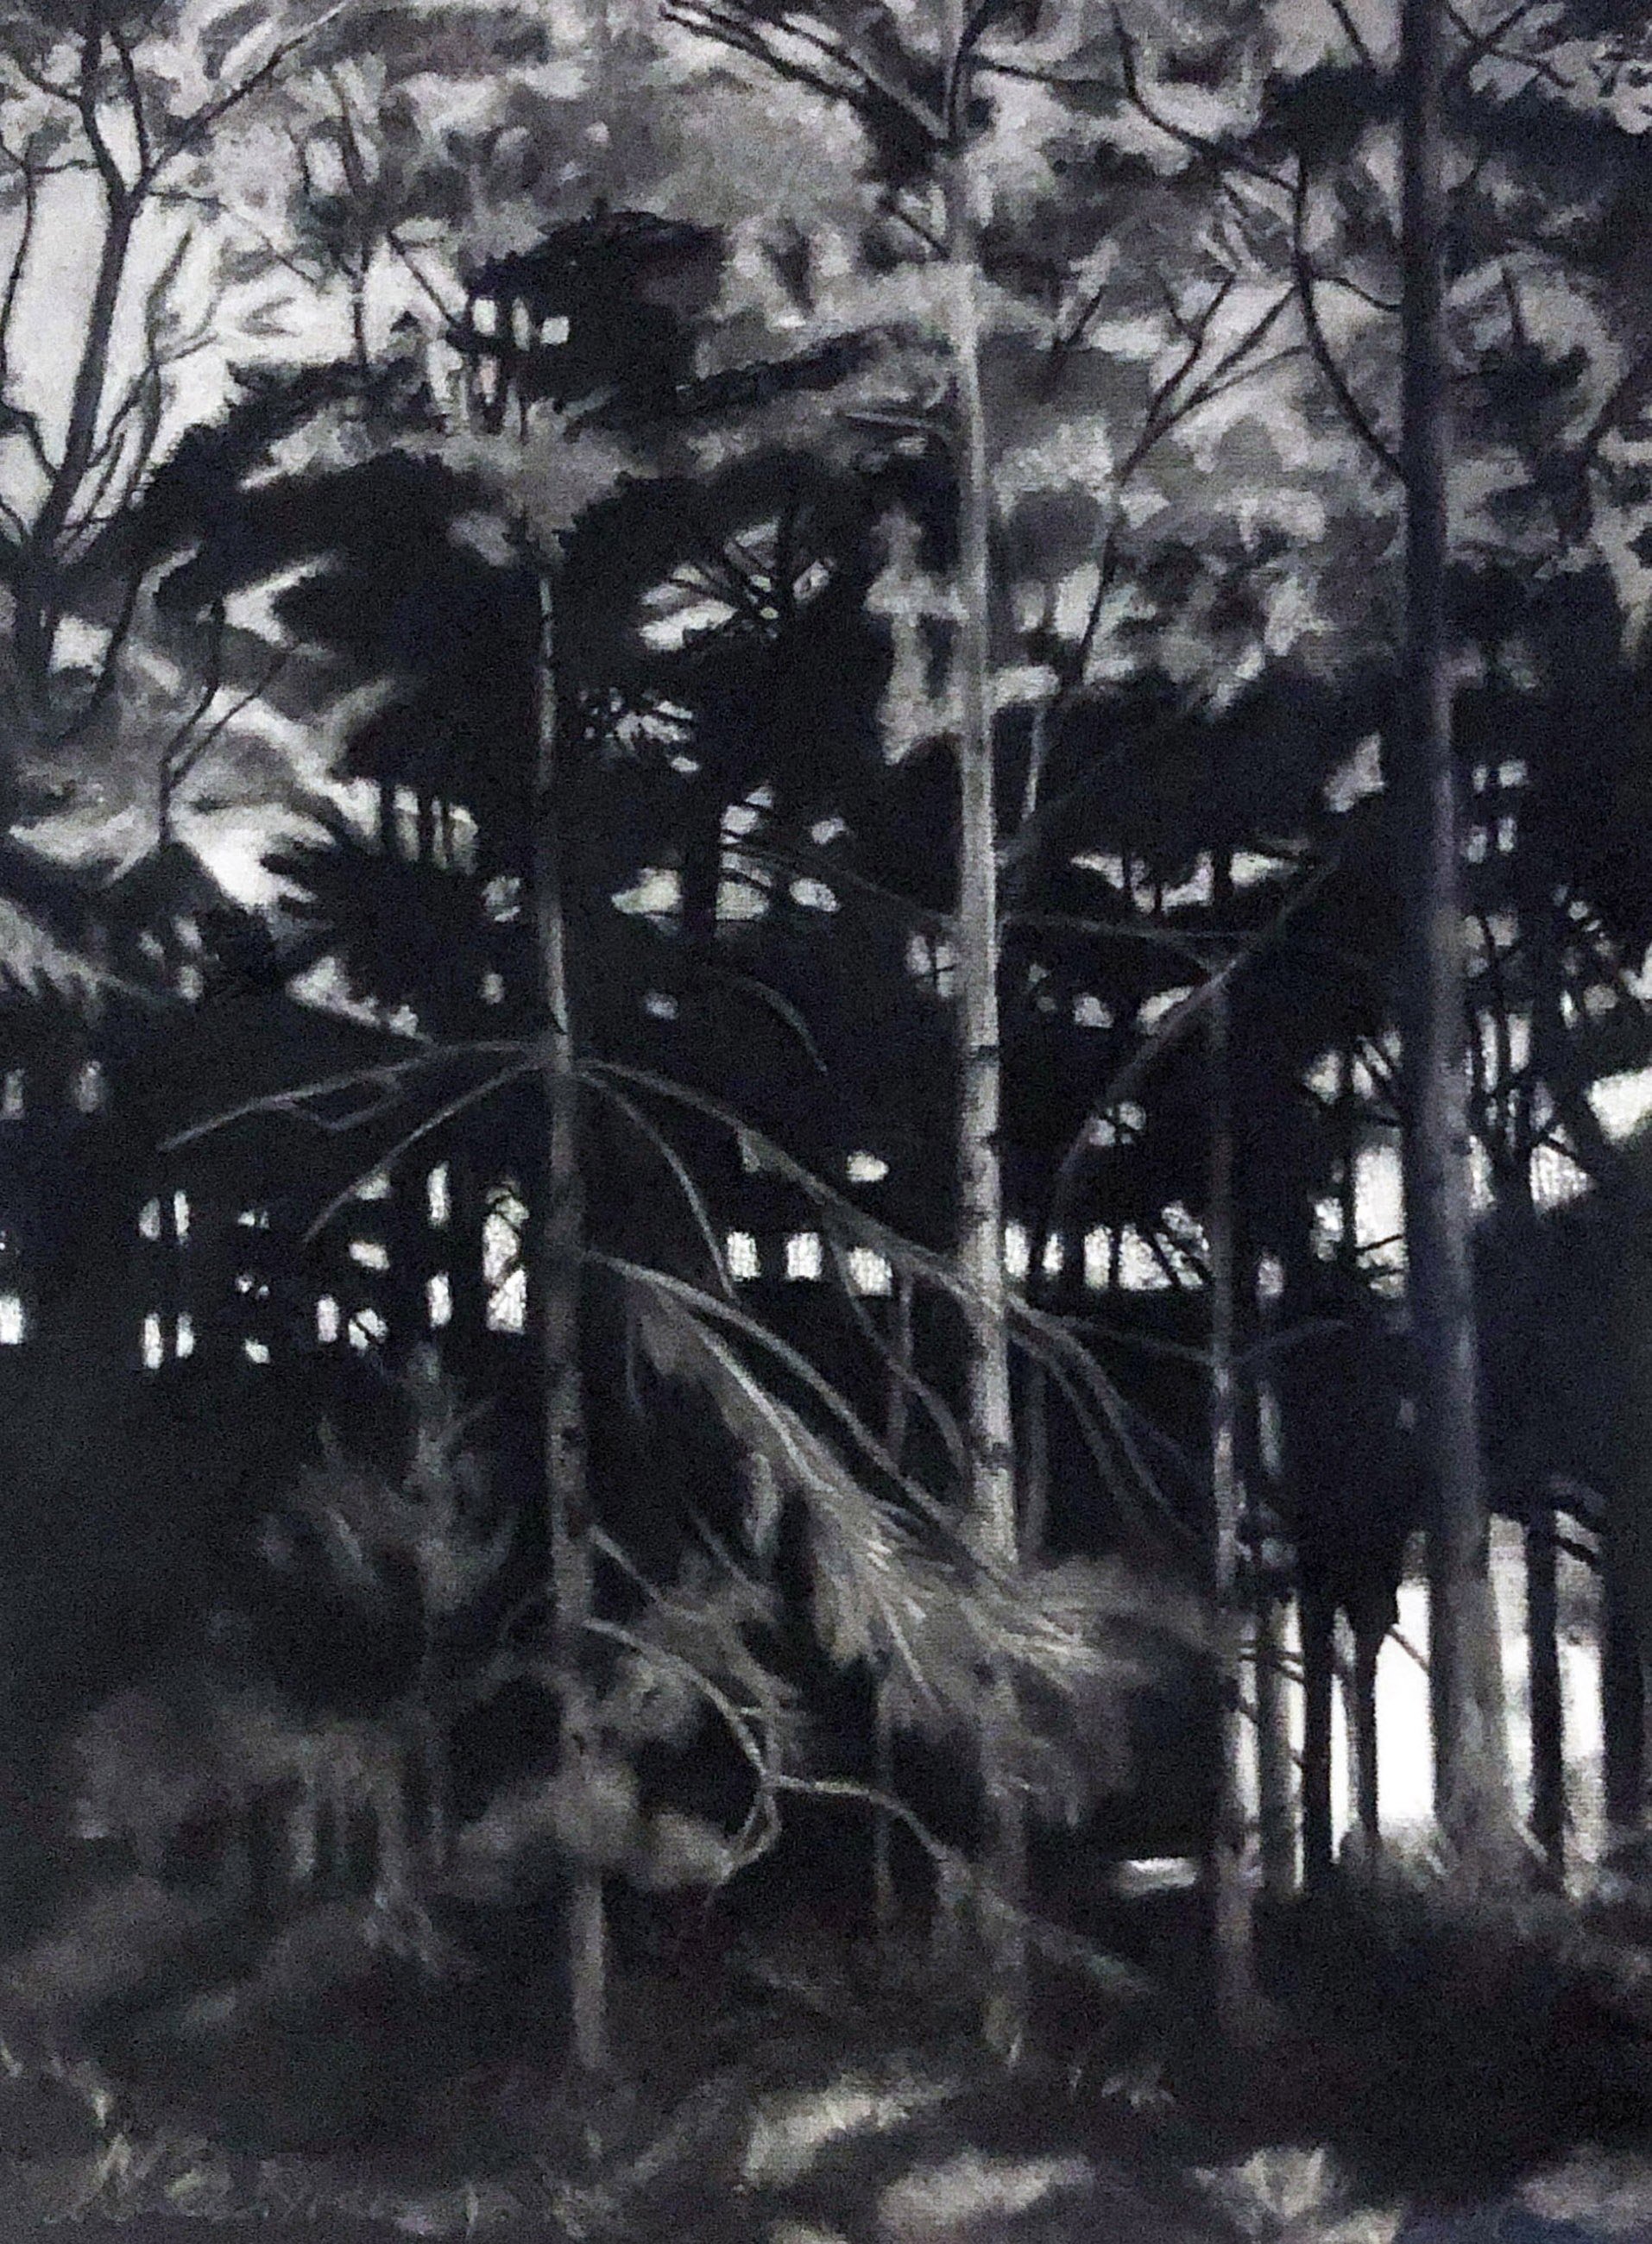 "NEIGHBOR HOOD, 2019, Charcoal on paper, 22 1/4"" x 16 1/2"" unframed, 28 1/2"" x 21 1/2"" framed"